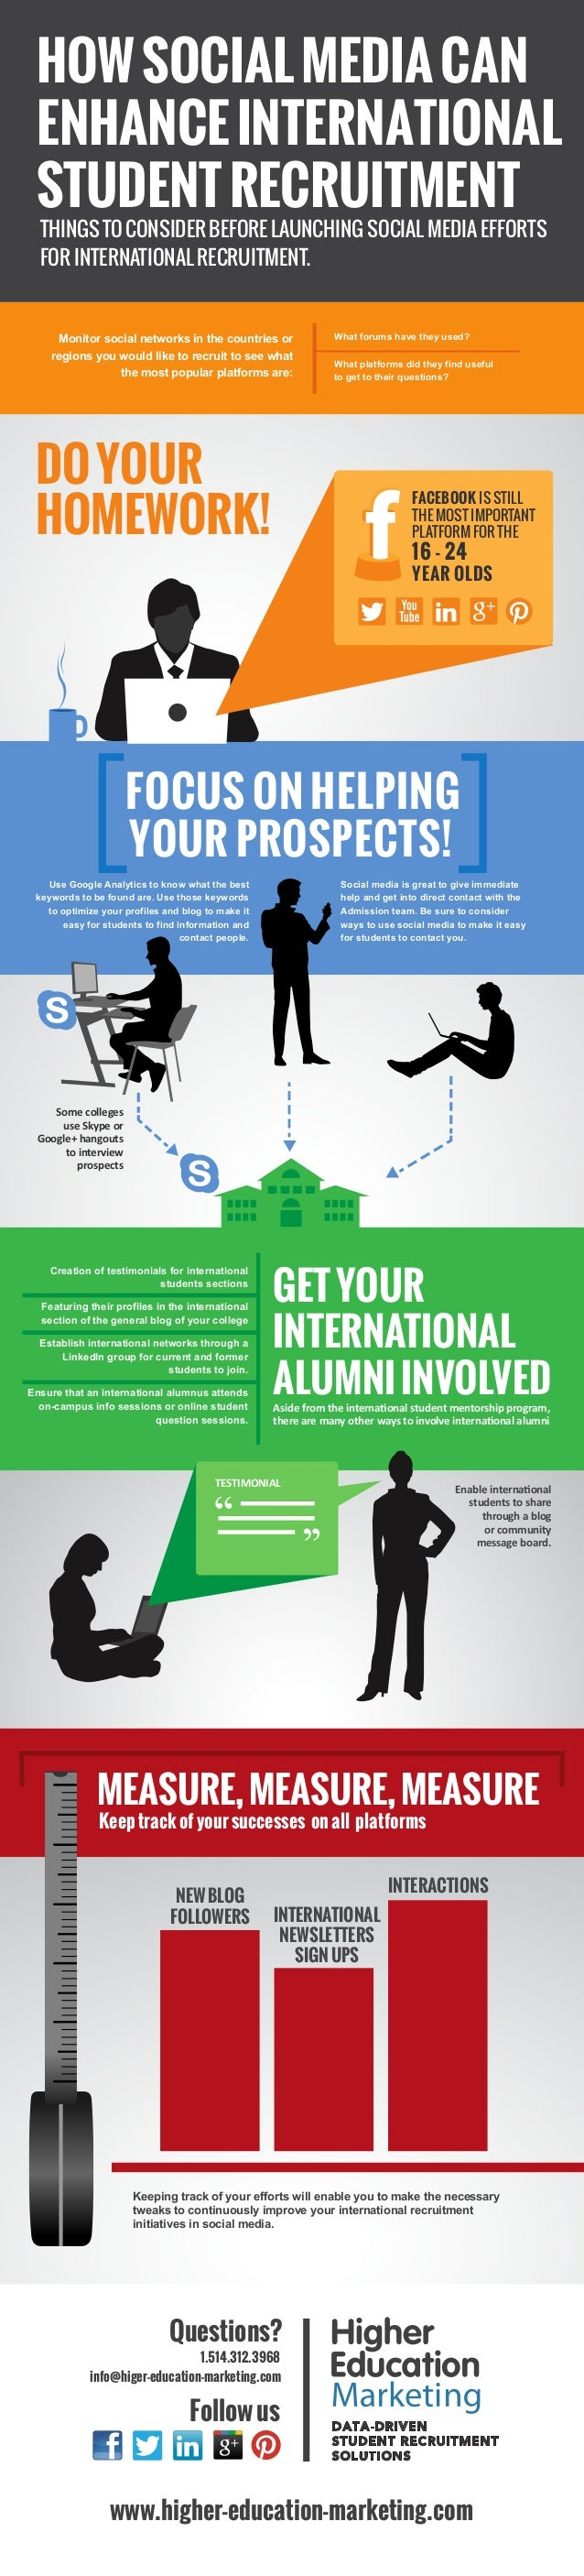 HOW SOCIAL MEDIA CAN ENHANCE INTERNATIONAL STUDENT RECRUITMENT THINGS TO CONSIDER BEFORE LAUNCHING SOCIAL MEDIA EFFORTS FO...